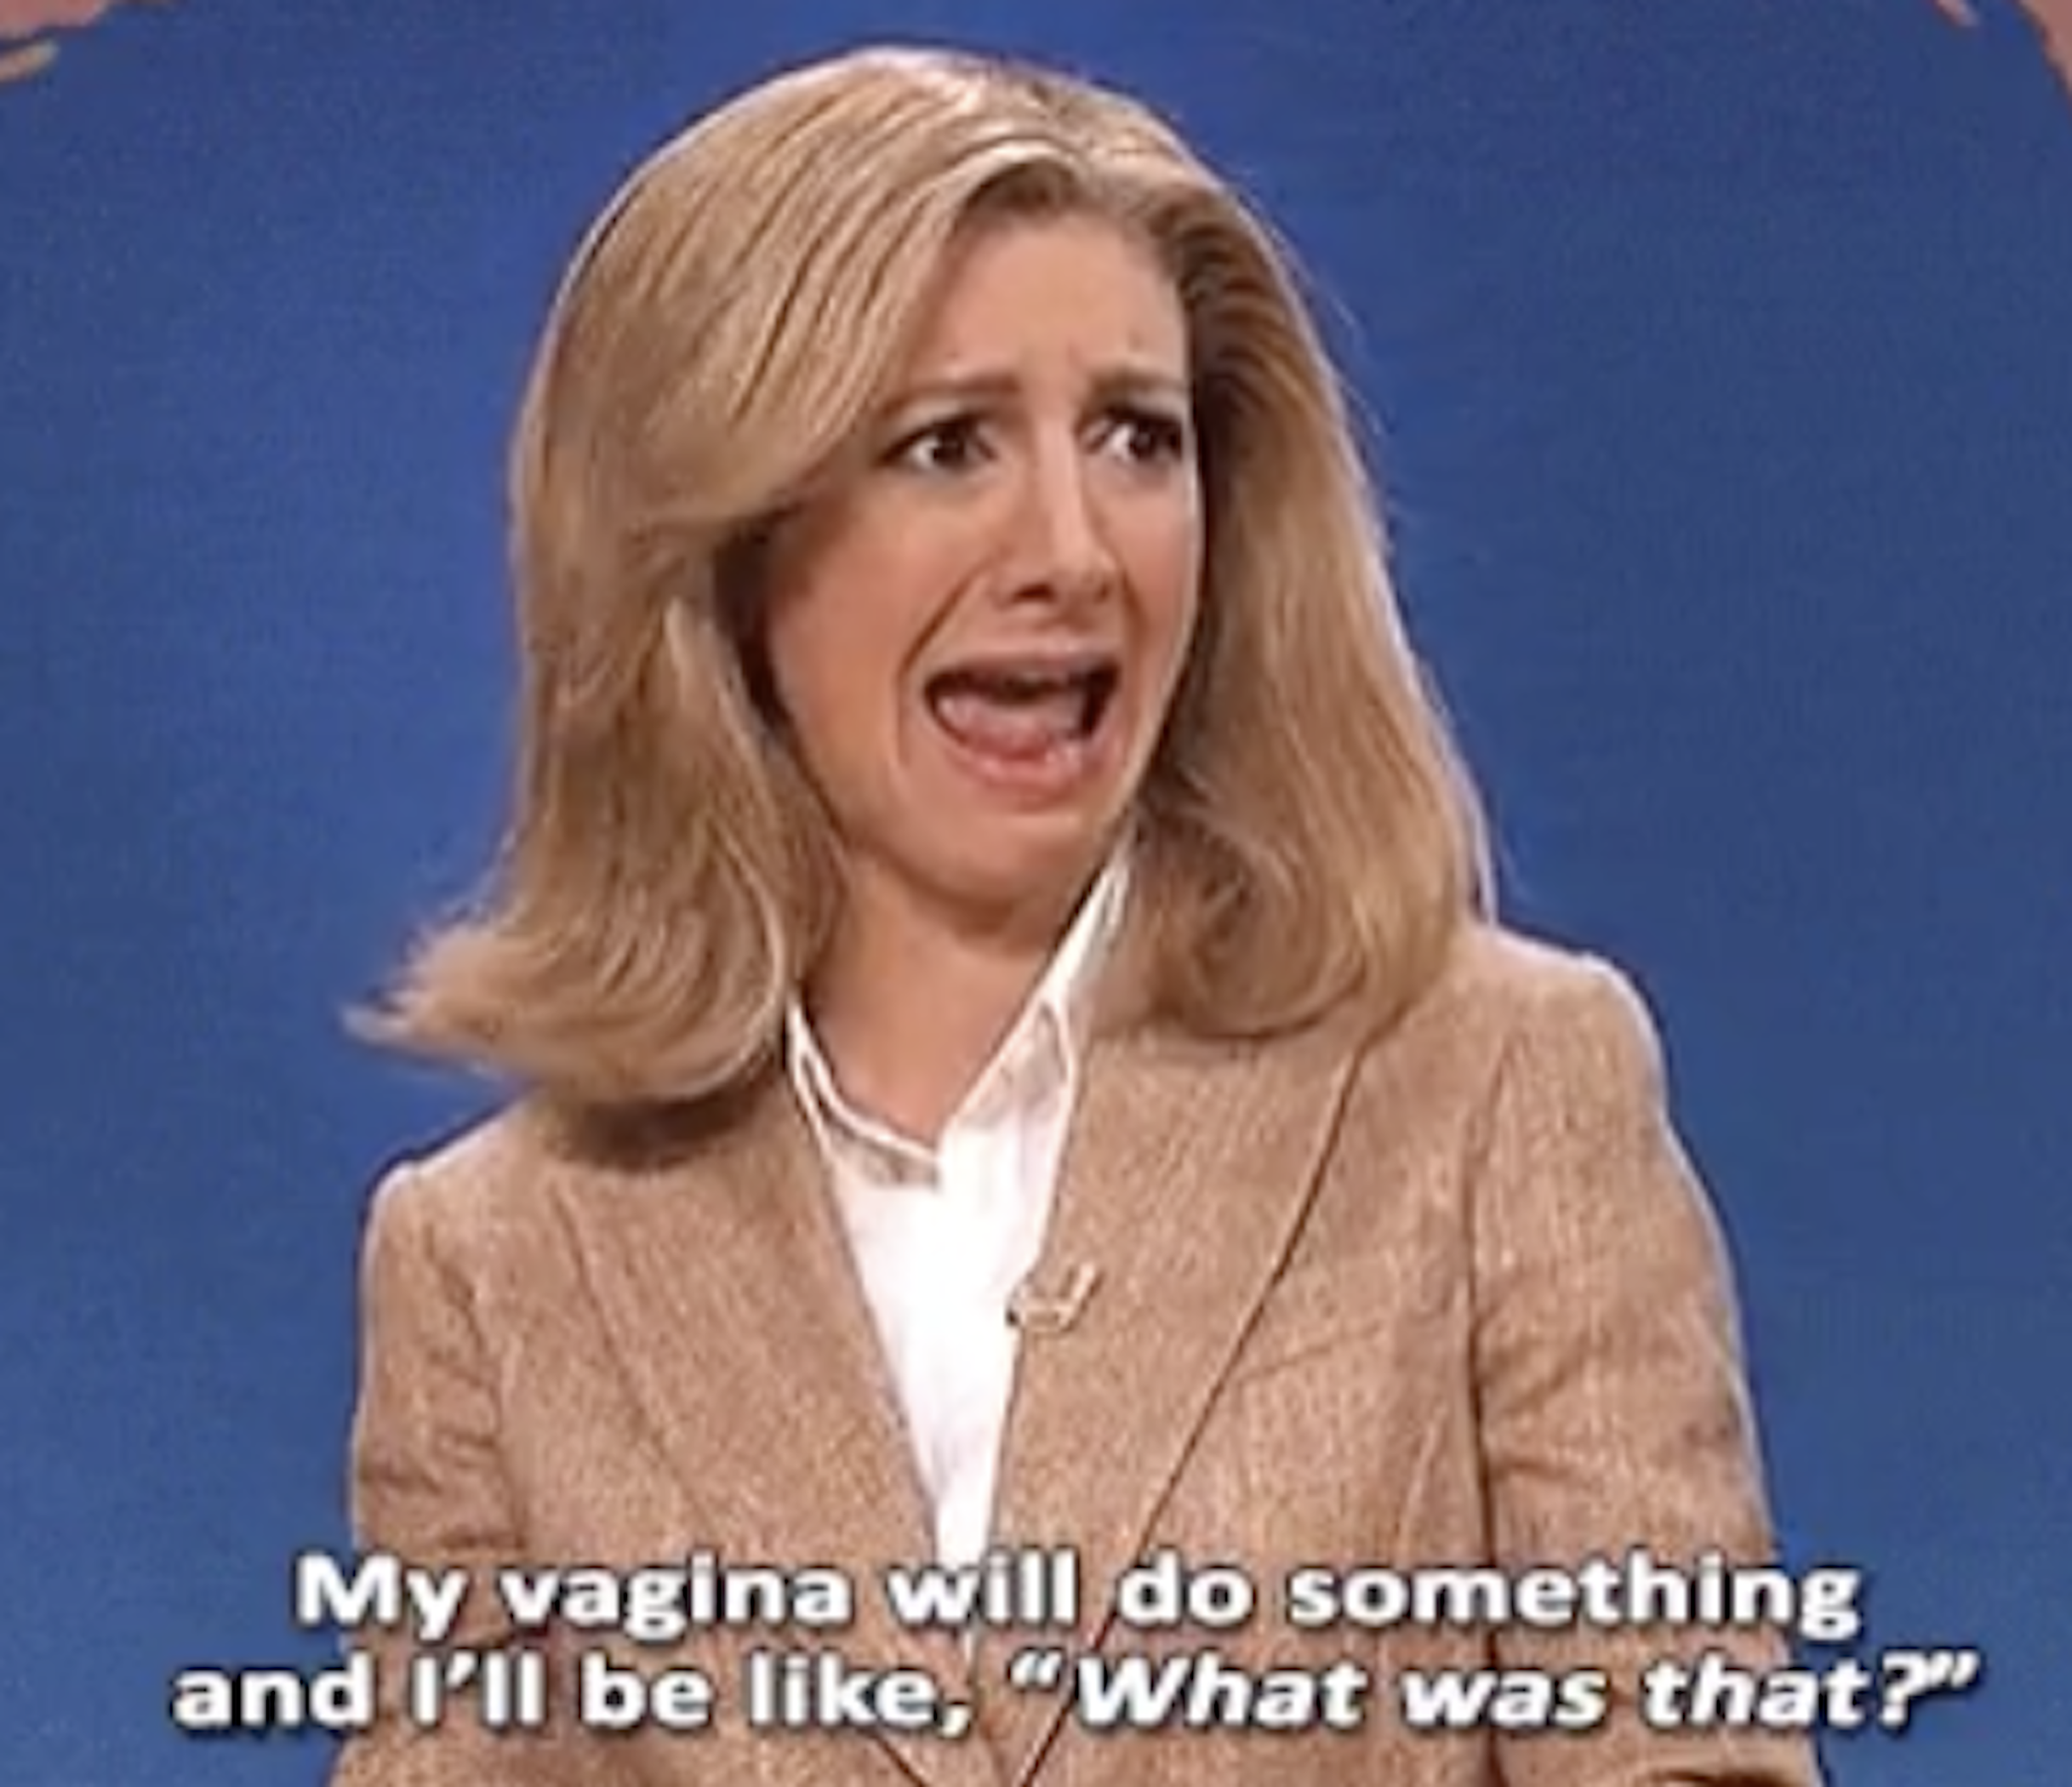 """Nasim Pedrad on SNL's Weekend Update, saying, """"My vagina will do something and I'll be like, 'What was that?'"""""""